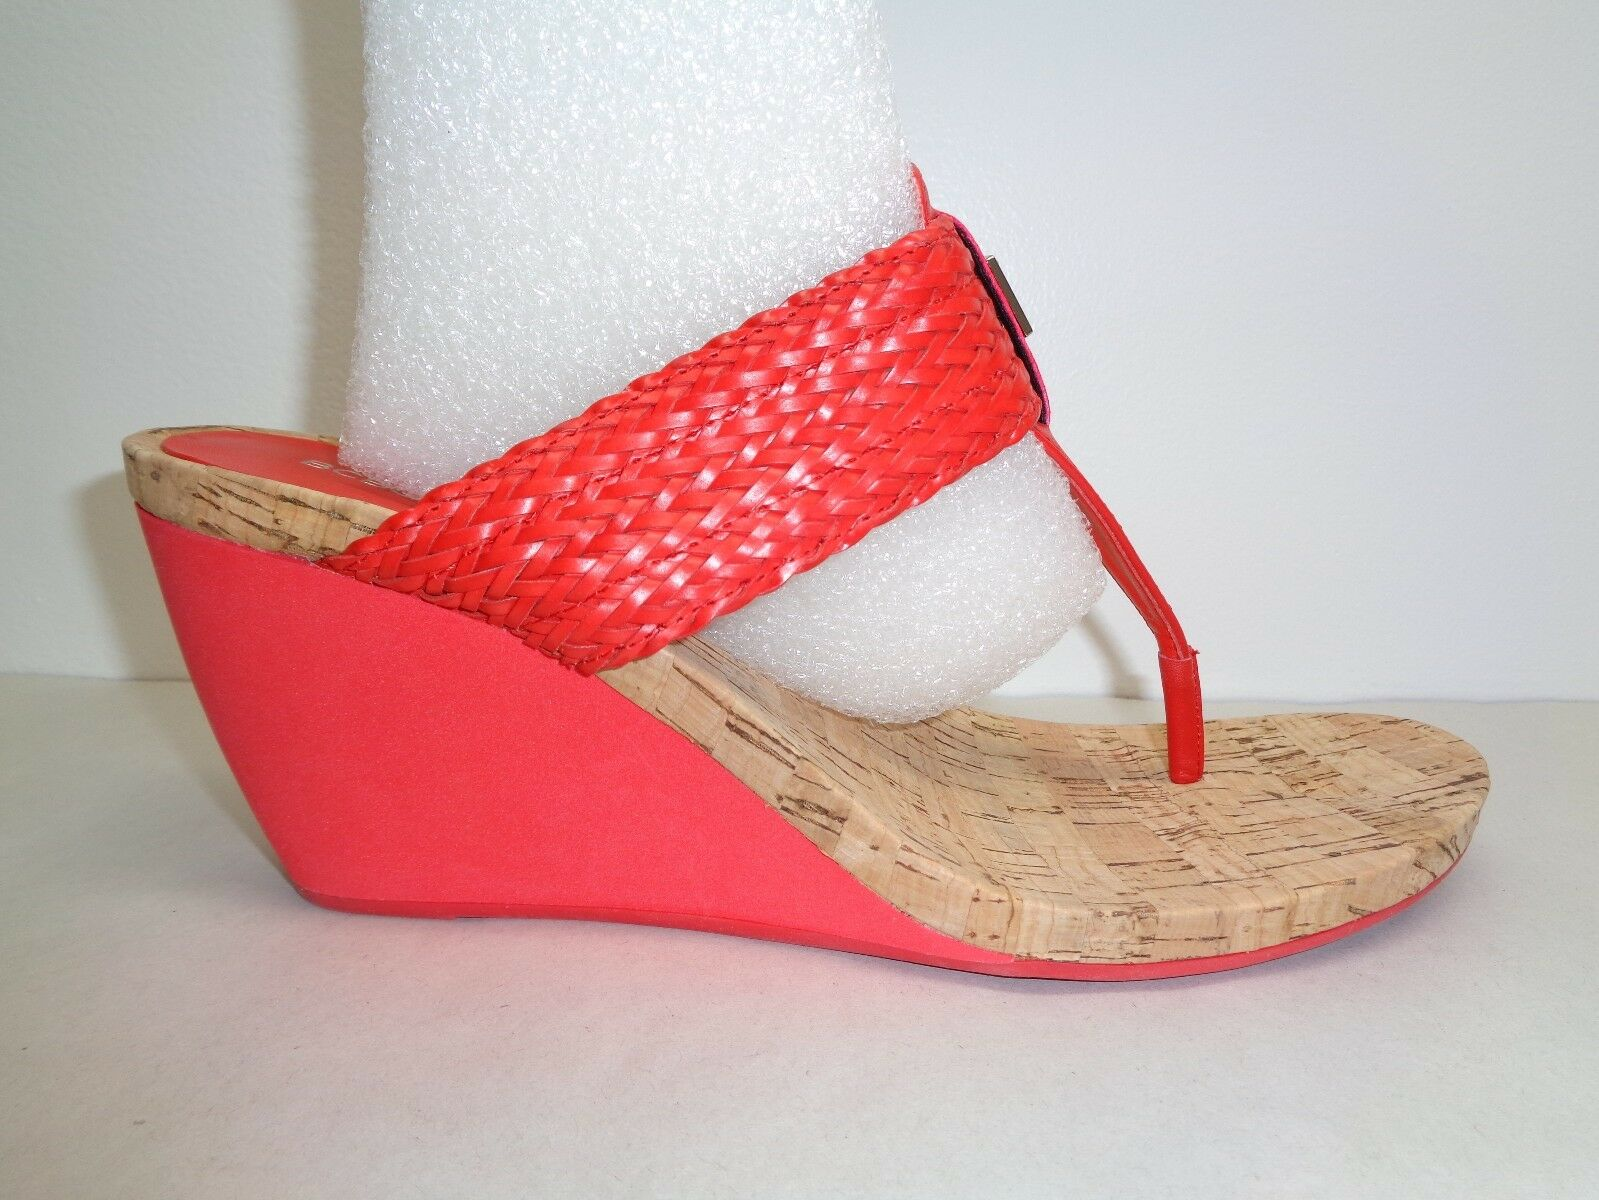 BCBG BCBGeneration Size 9.5 M MEL Red Wedge Heels Sandals New Womens shoes